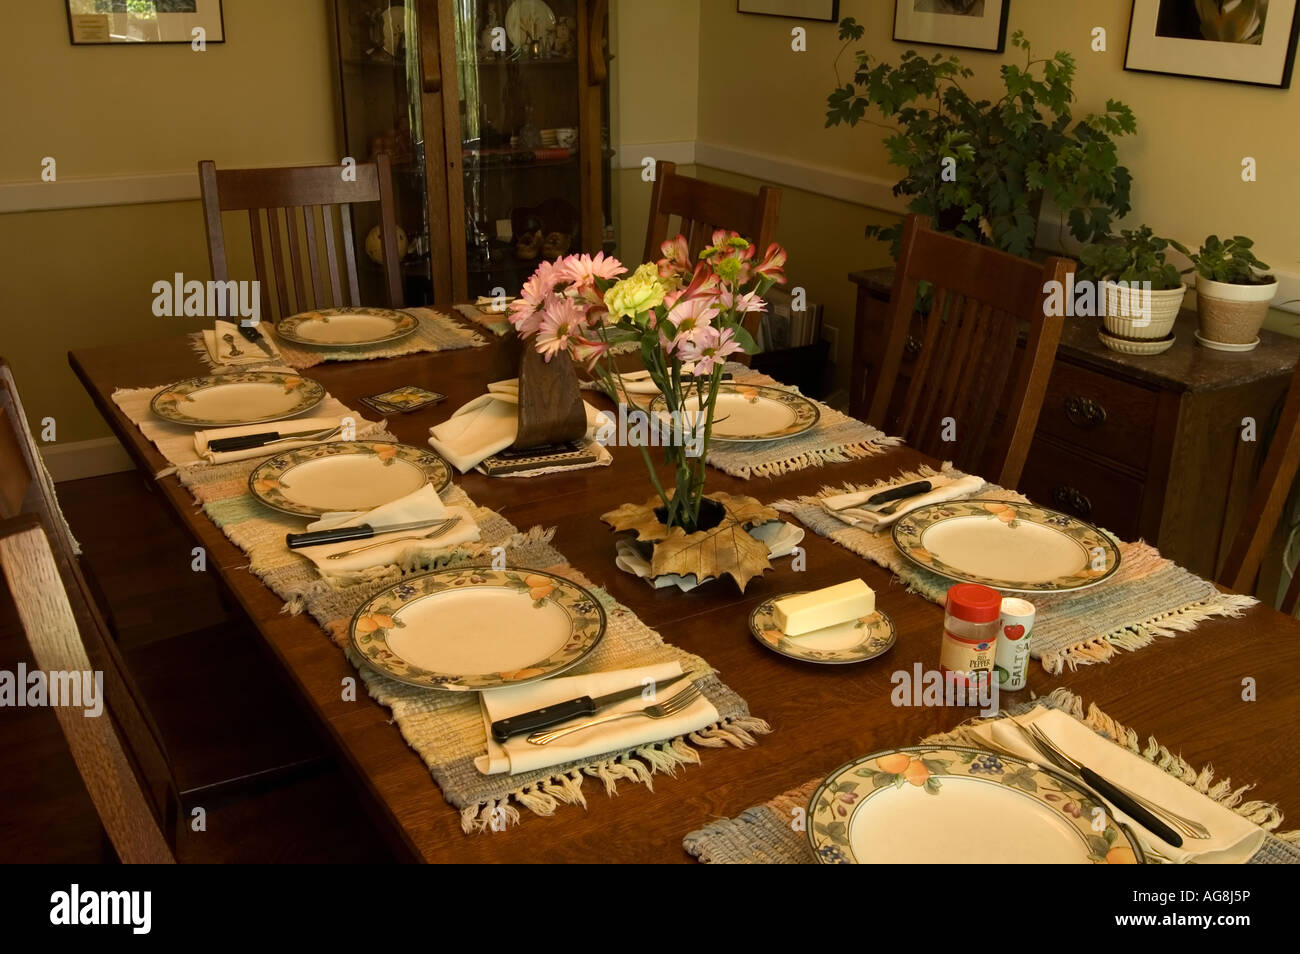 Dining Room Table Set Up For Meal Stock Photo Royalty  : dining room table set up for meal AG8J5P from www.alamy.com size 1300 x 954 jpeg 175kB